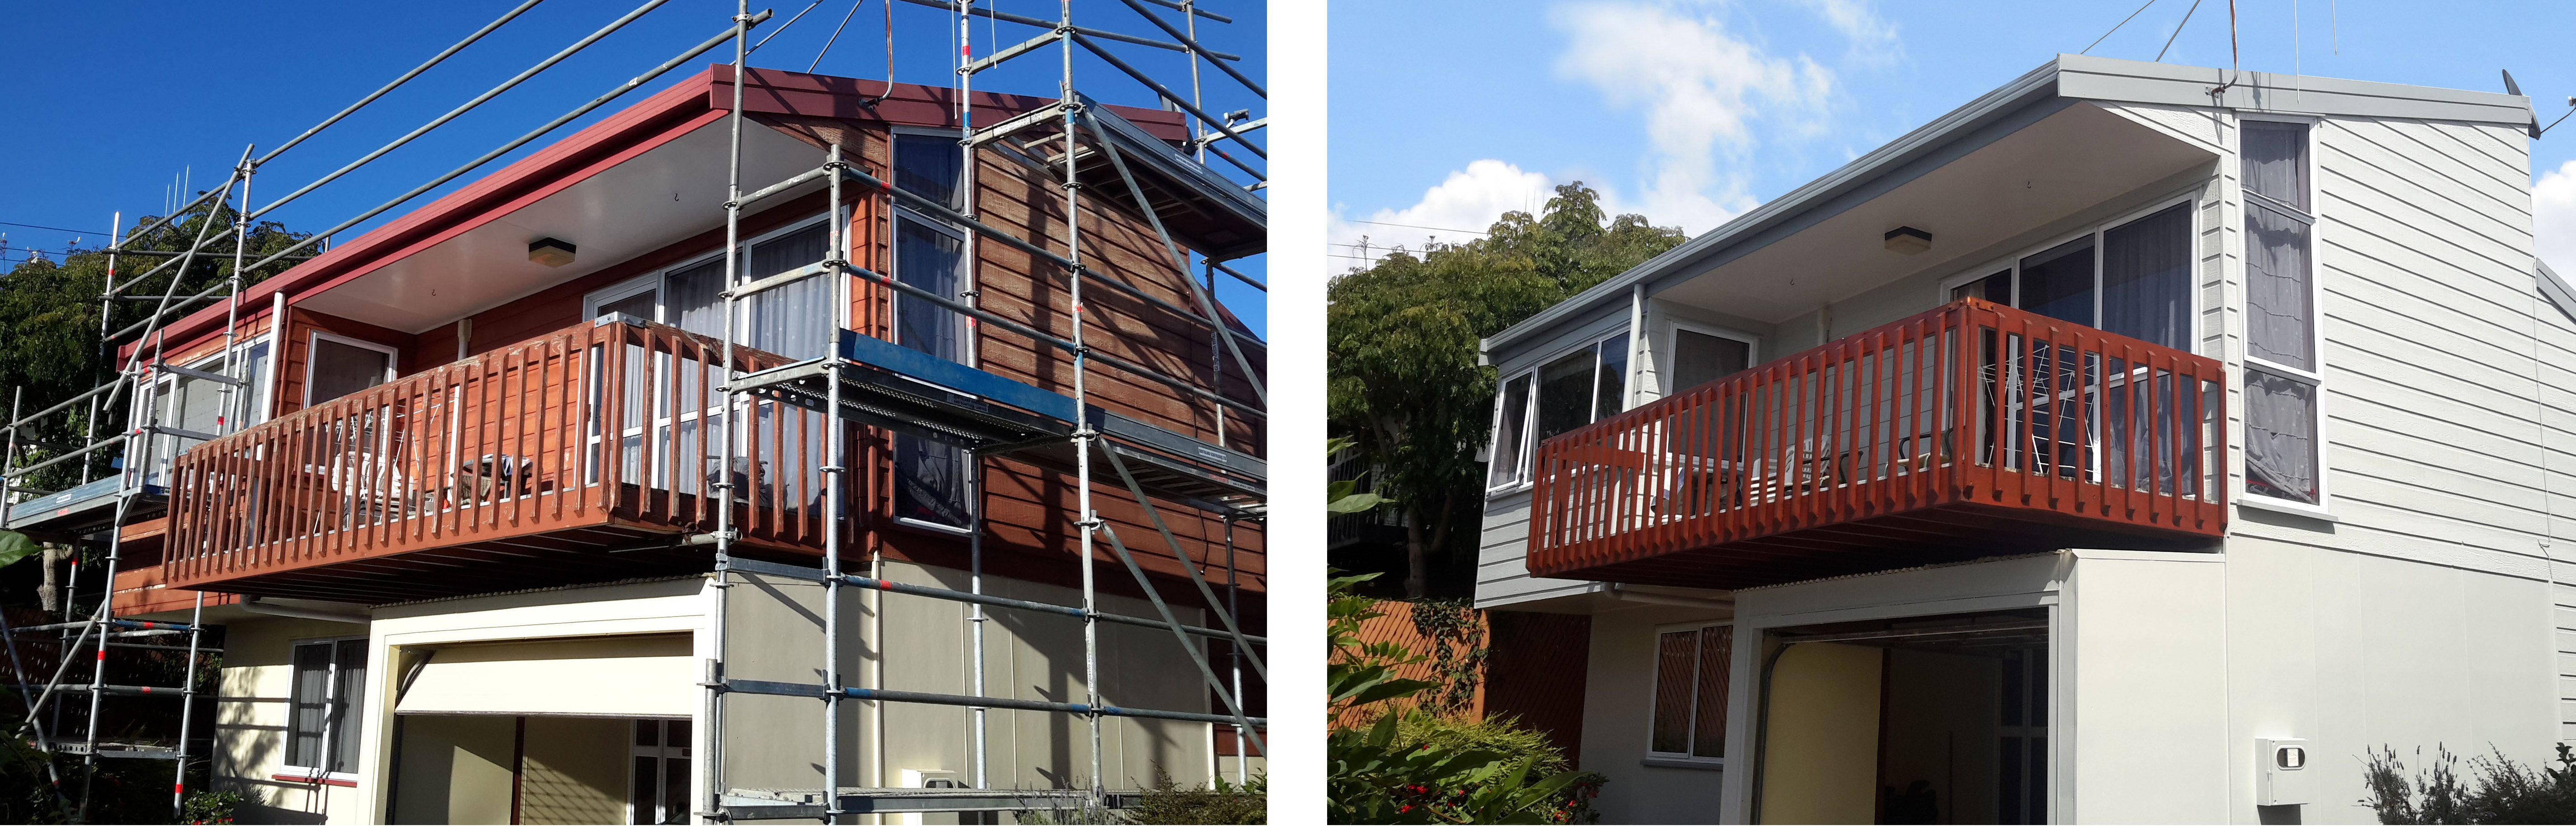 Before and after residential house requiring scaffolding by Wayne Webb Painter